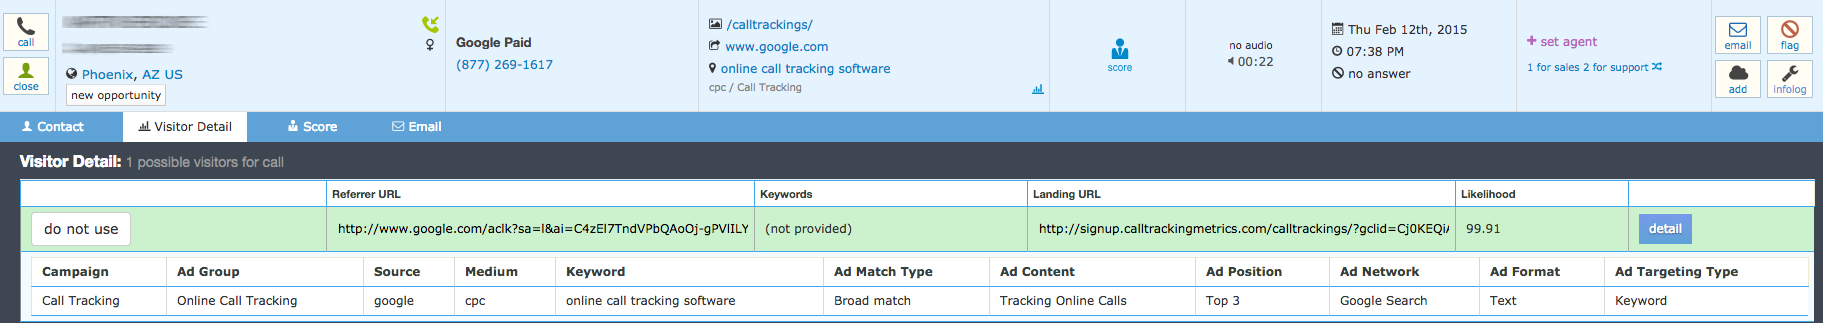 Graphic of Adwords campaign information in CallTrackingMetrics call log